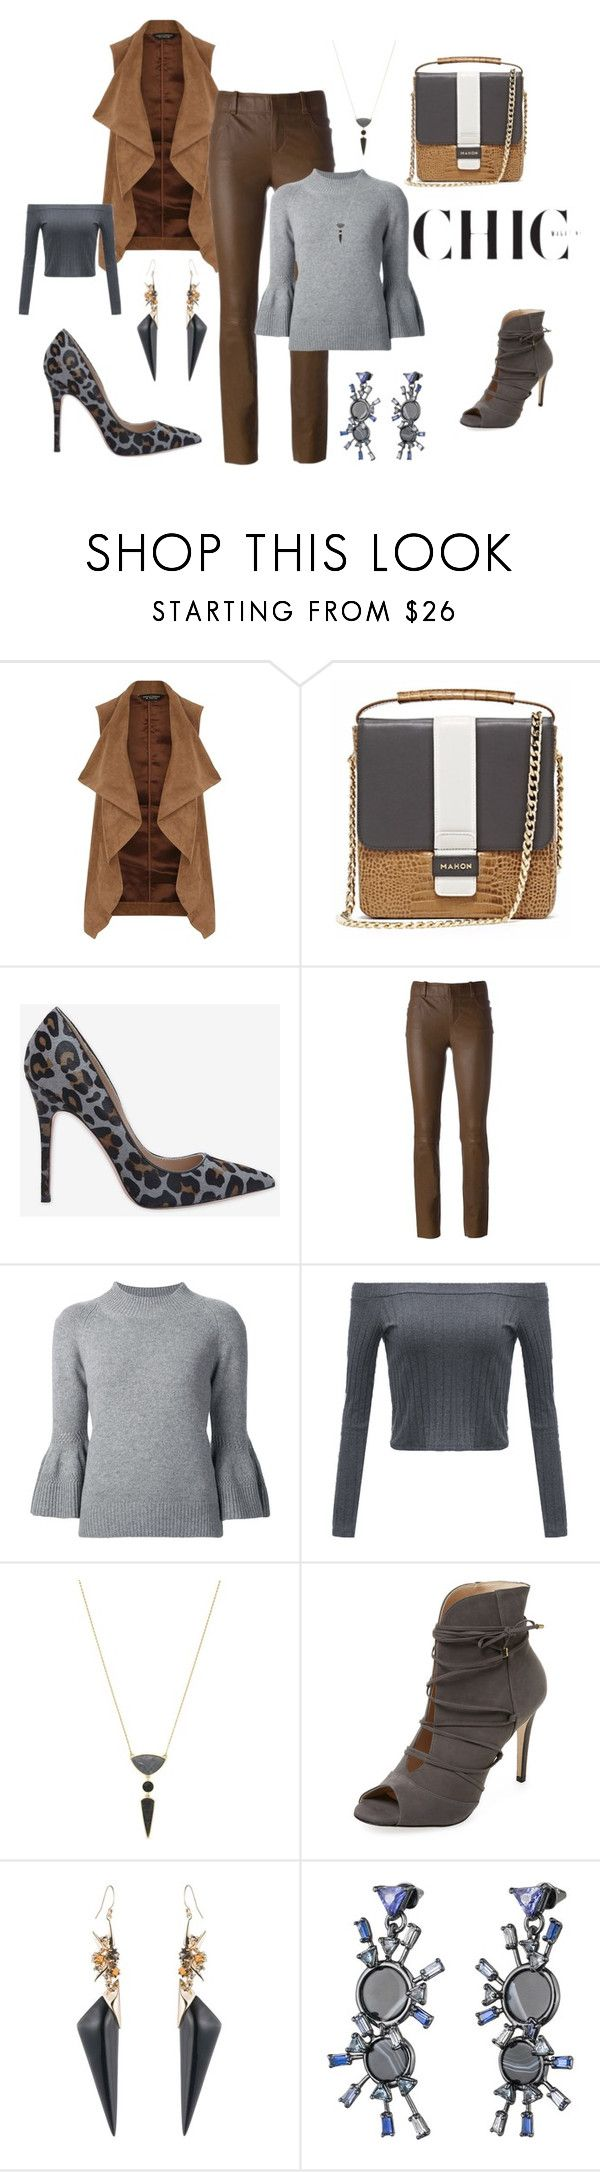 """""""Stouls skinny leather trousers"""" by cheryl-williams-286 ❤ liked on Polyvore featuring Dorothy Perkins, Jean-Michel Cazabat, STOULS, Carolina Herrera, Jessica Simpson, Elorie, Alexis Bittar and Eddie Borgo"""